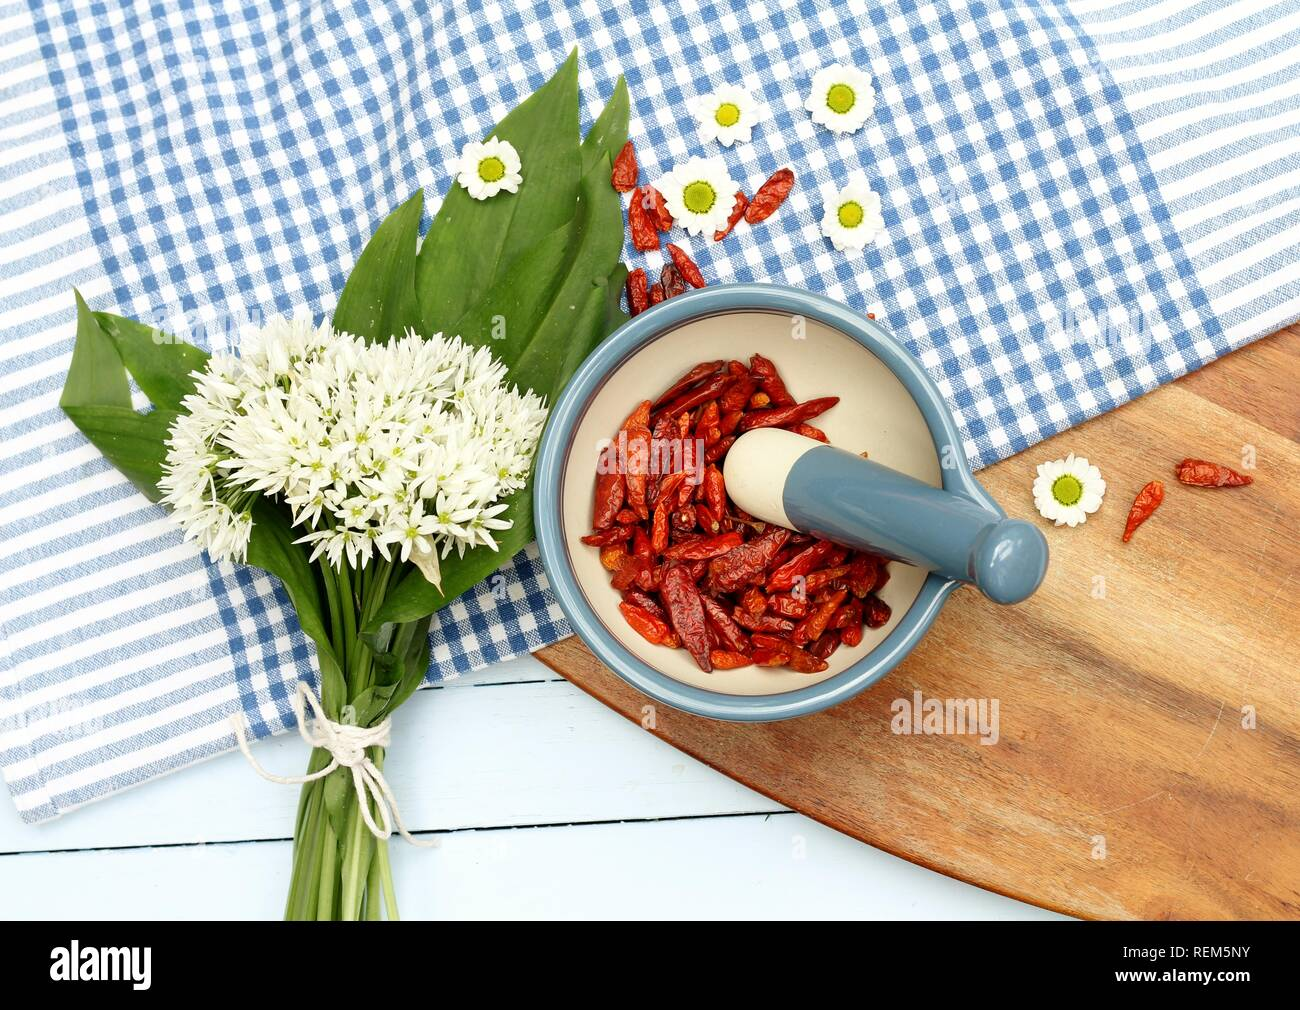 Wild Garlic And Red Dried Chilli Peppers In Kitchen Flat Lay Stock